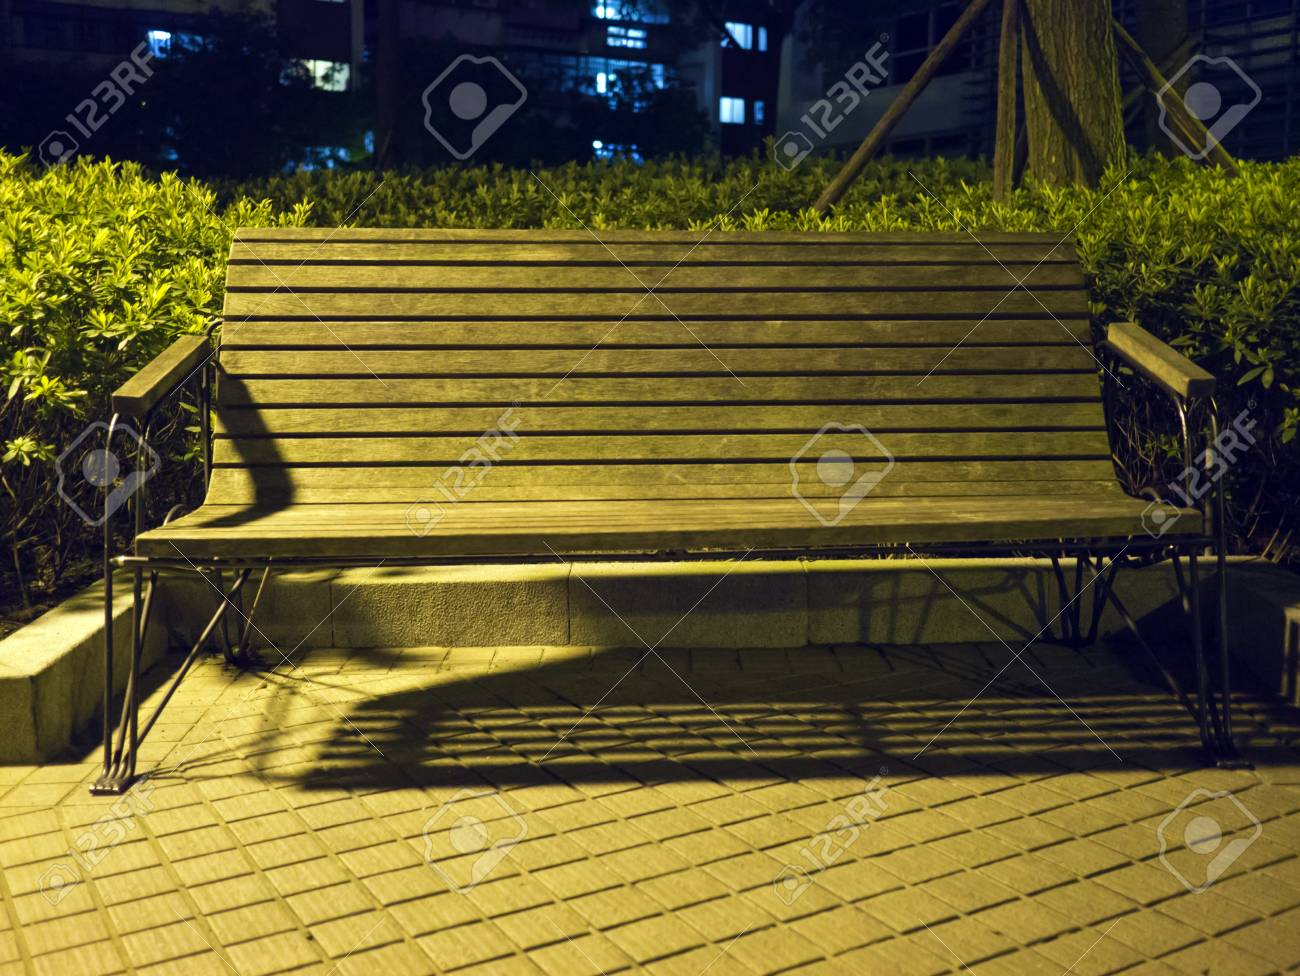 Wooden Park Bench At A Park At Night Stock Photo Picture And